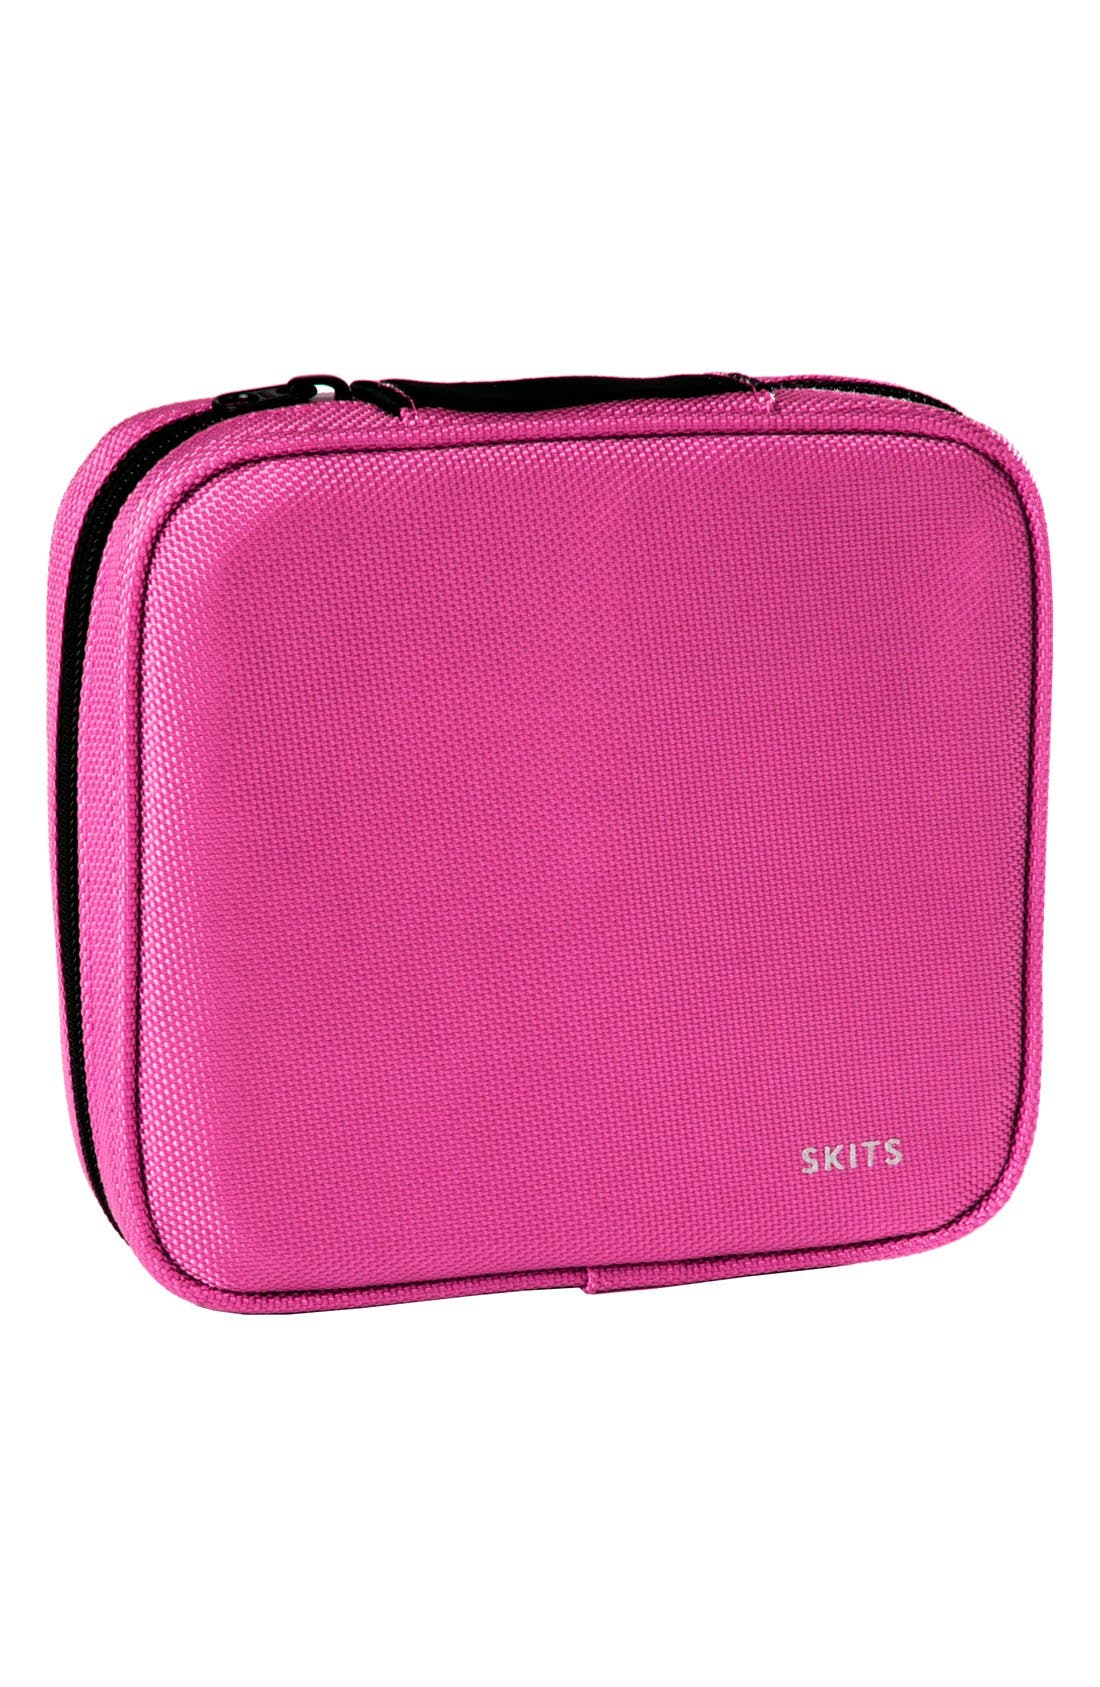 Main Image - SKITS 'Smart' Tech Accessories & Cables Case